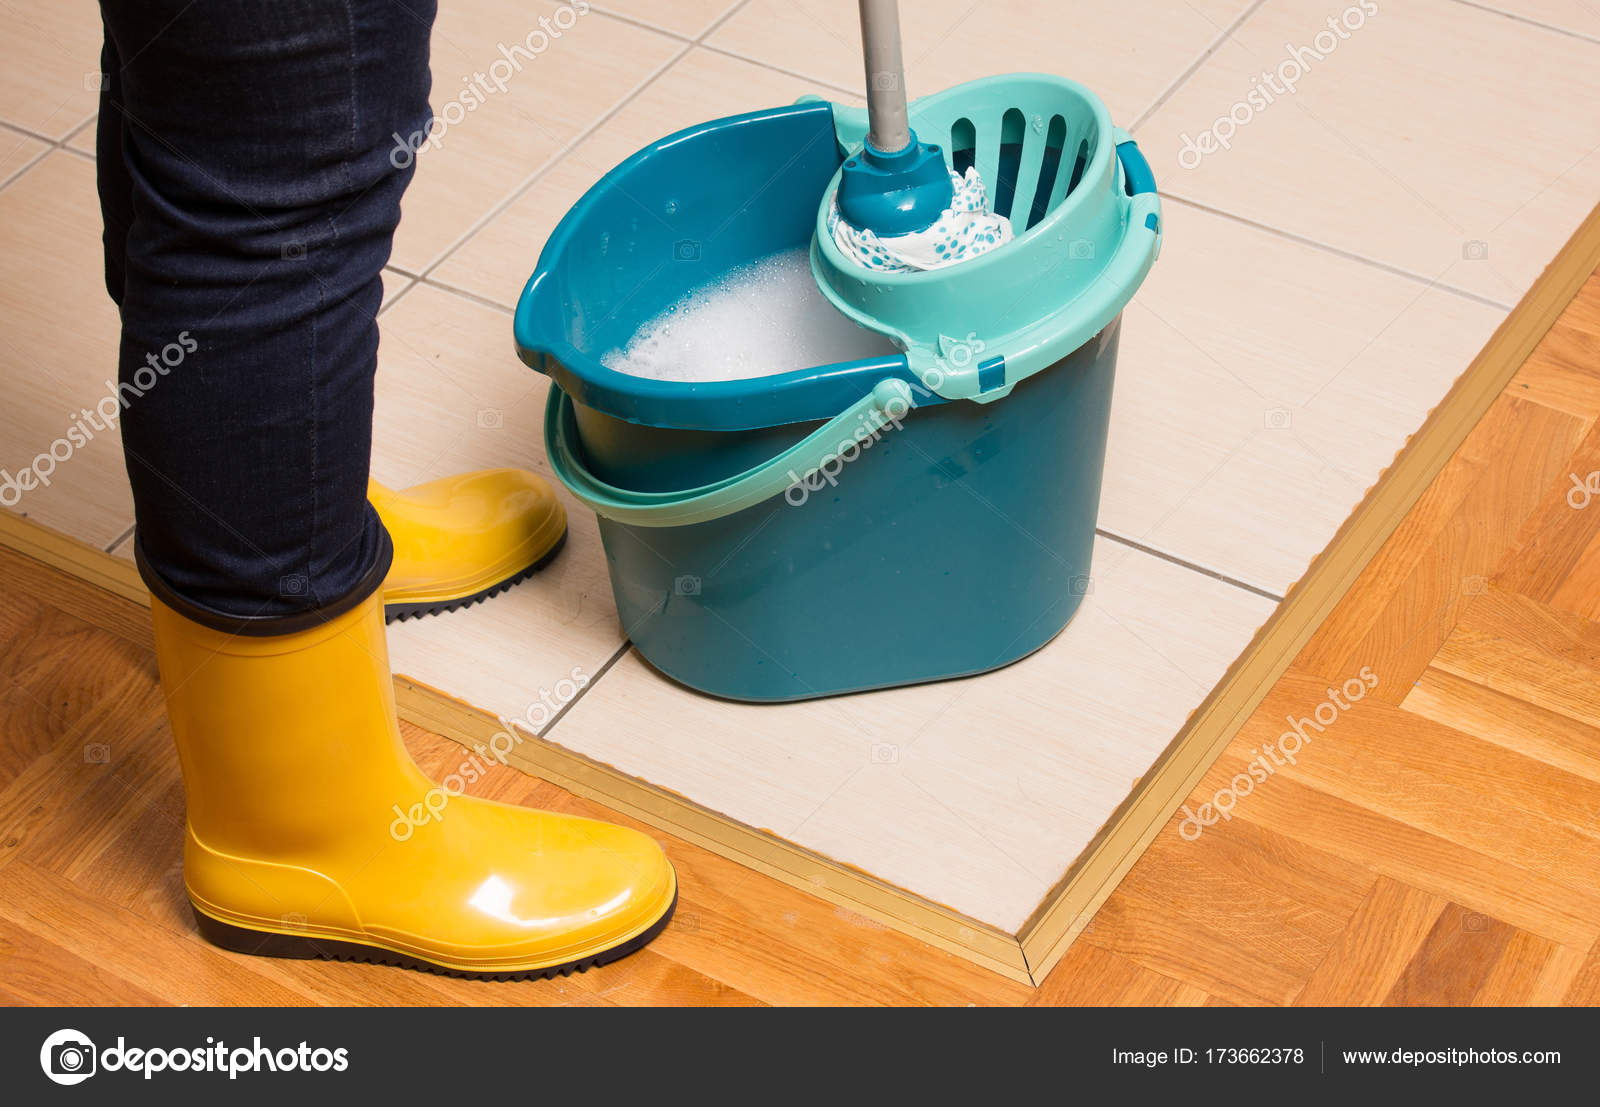 Housekeeper mopping tiled floor stock photo budabar 173662378 housekeeper mopping tiled floor stock photo dailygadgetfo Image collections